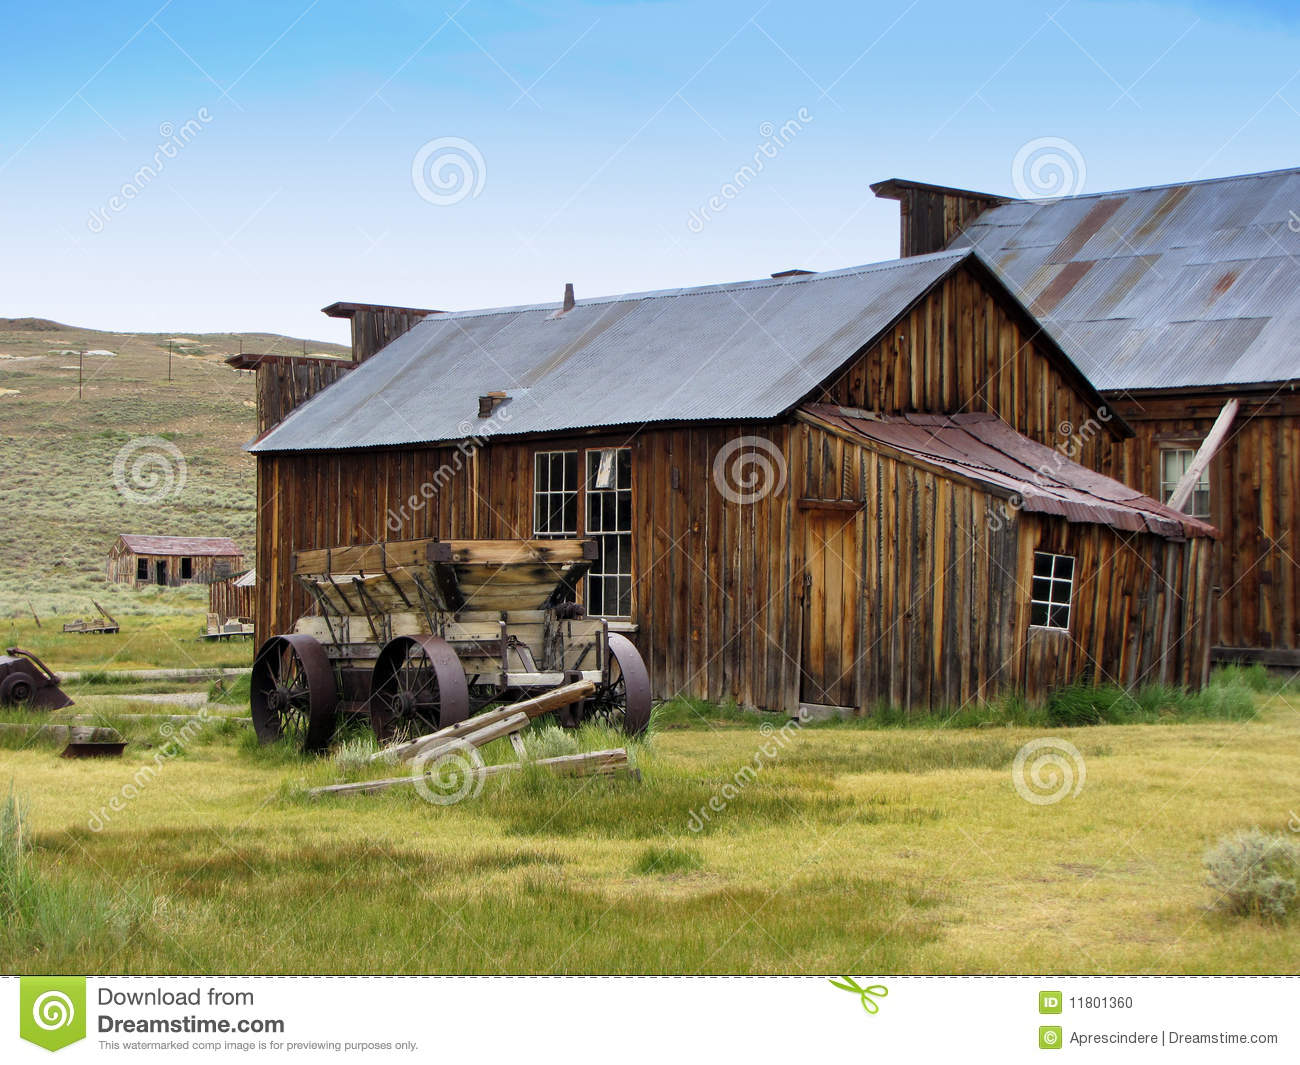 Barndominium Floor Plans besides Log Home Plans With Wrap Around Porches together with Rustic Cabi s together with France as well Barndominiums For Sale. on country rustic barn house plans